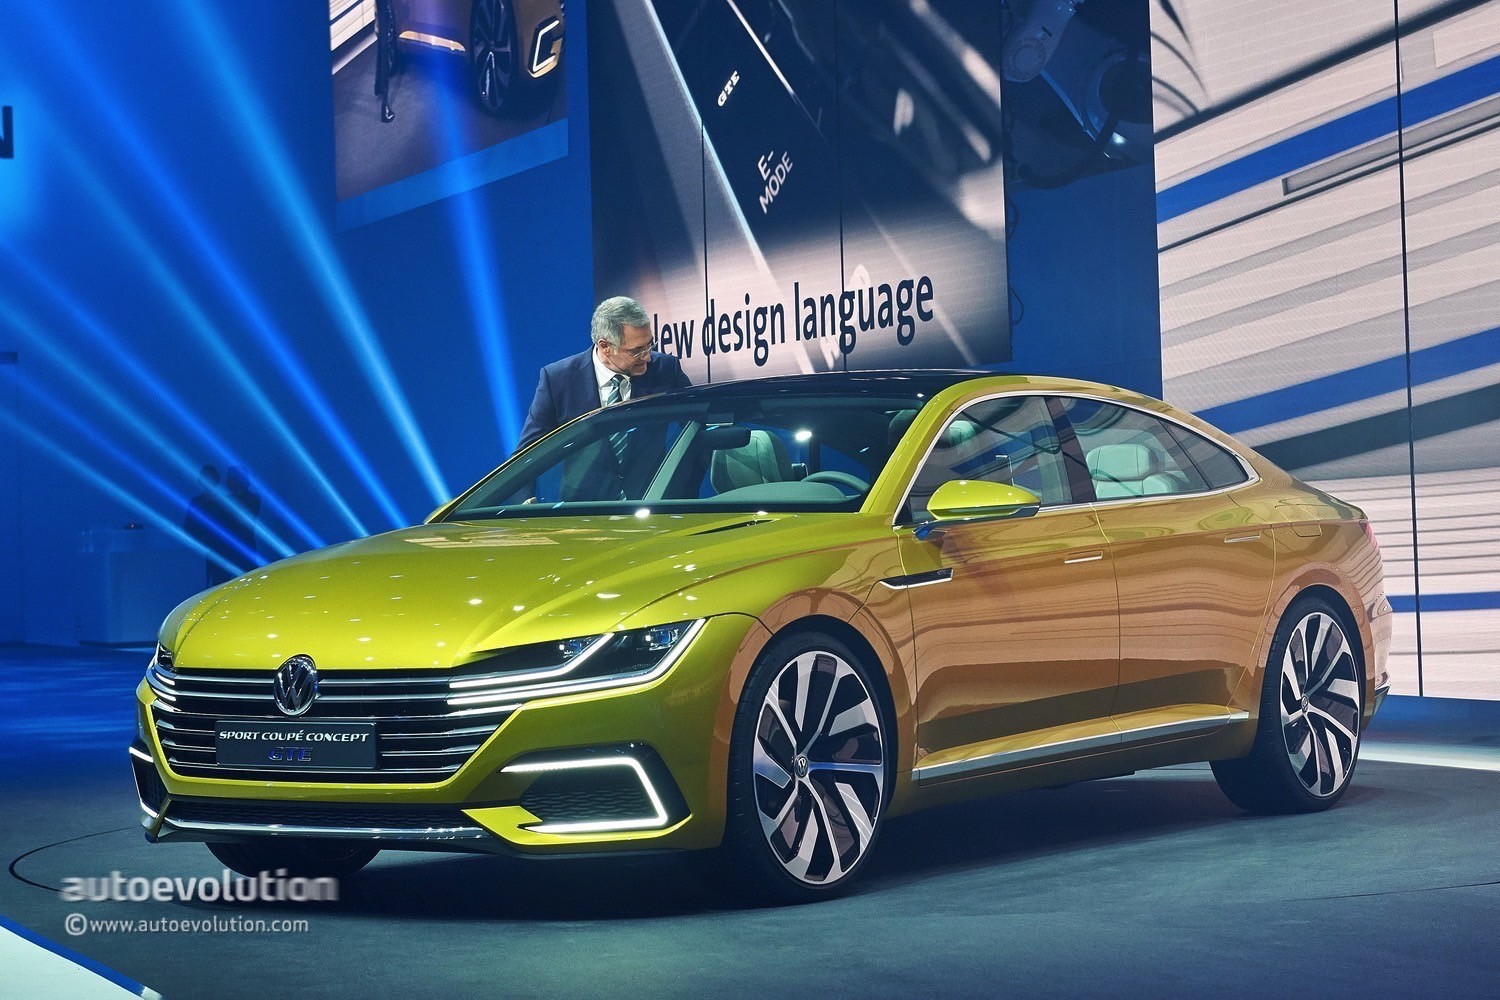 2015 Vw Sport Coupe Concept Gte Revealed With V6 Turbo